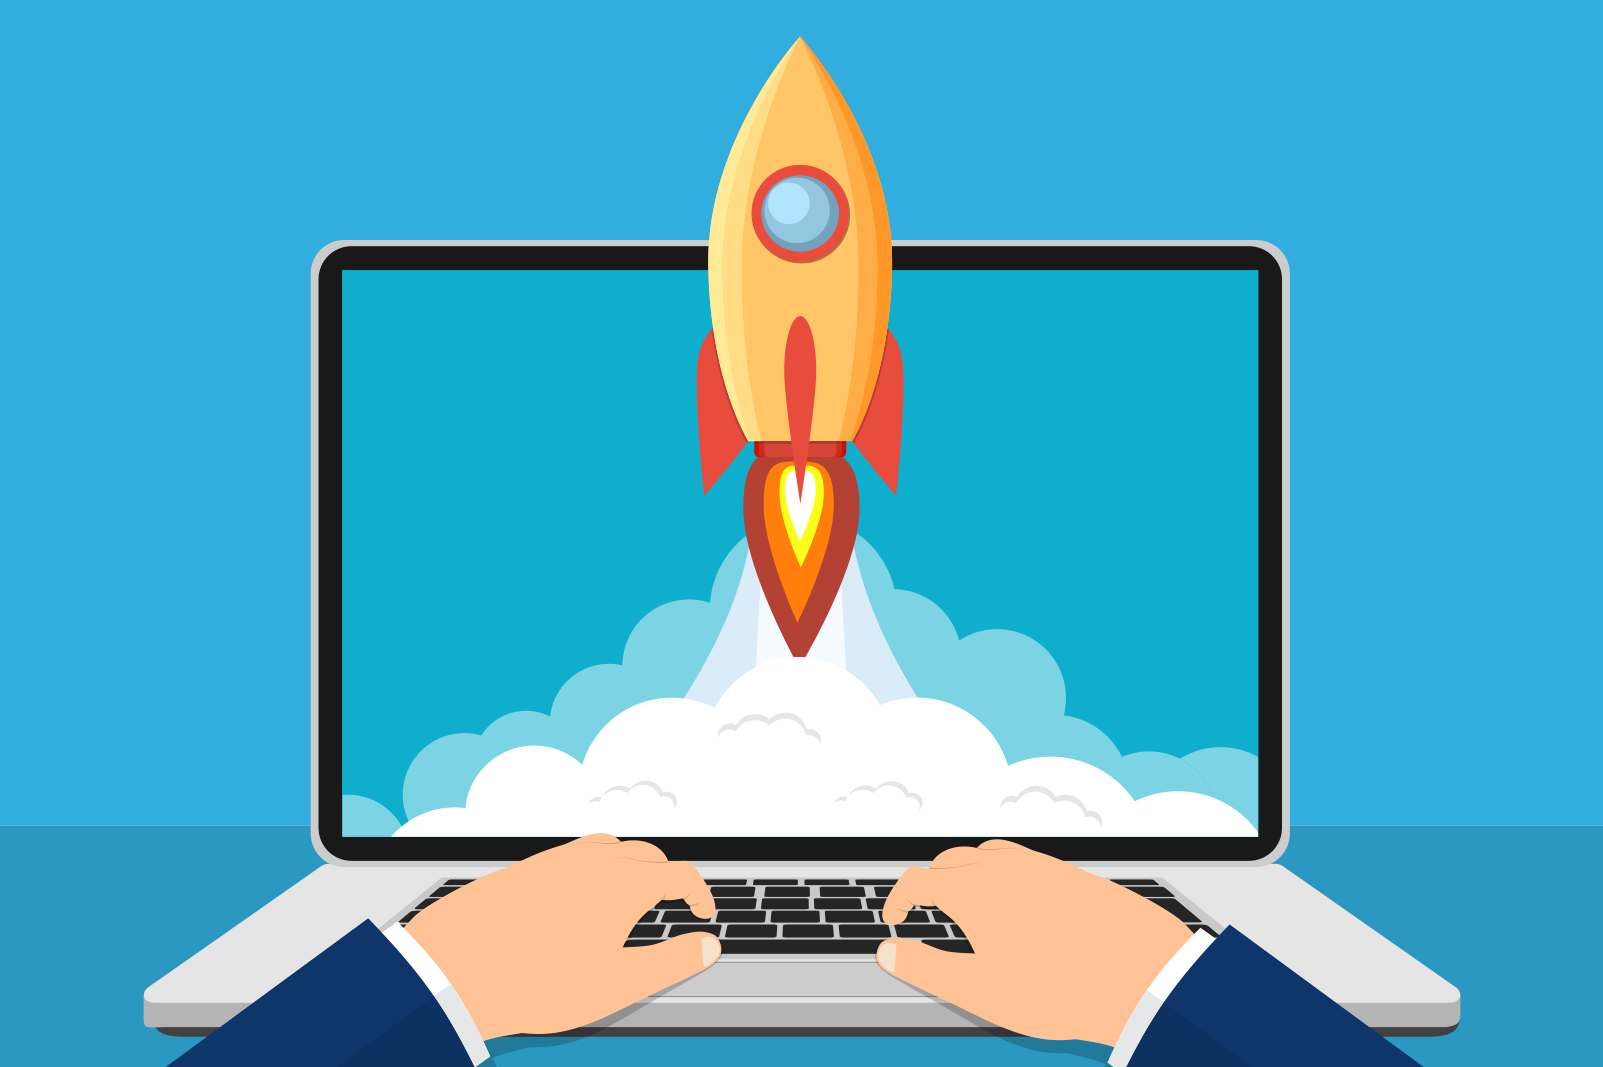 Clipart style image of a laptop with hands typing and a screen with rocket launching from inside it